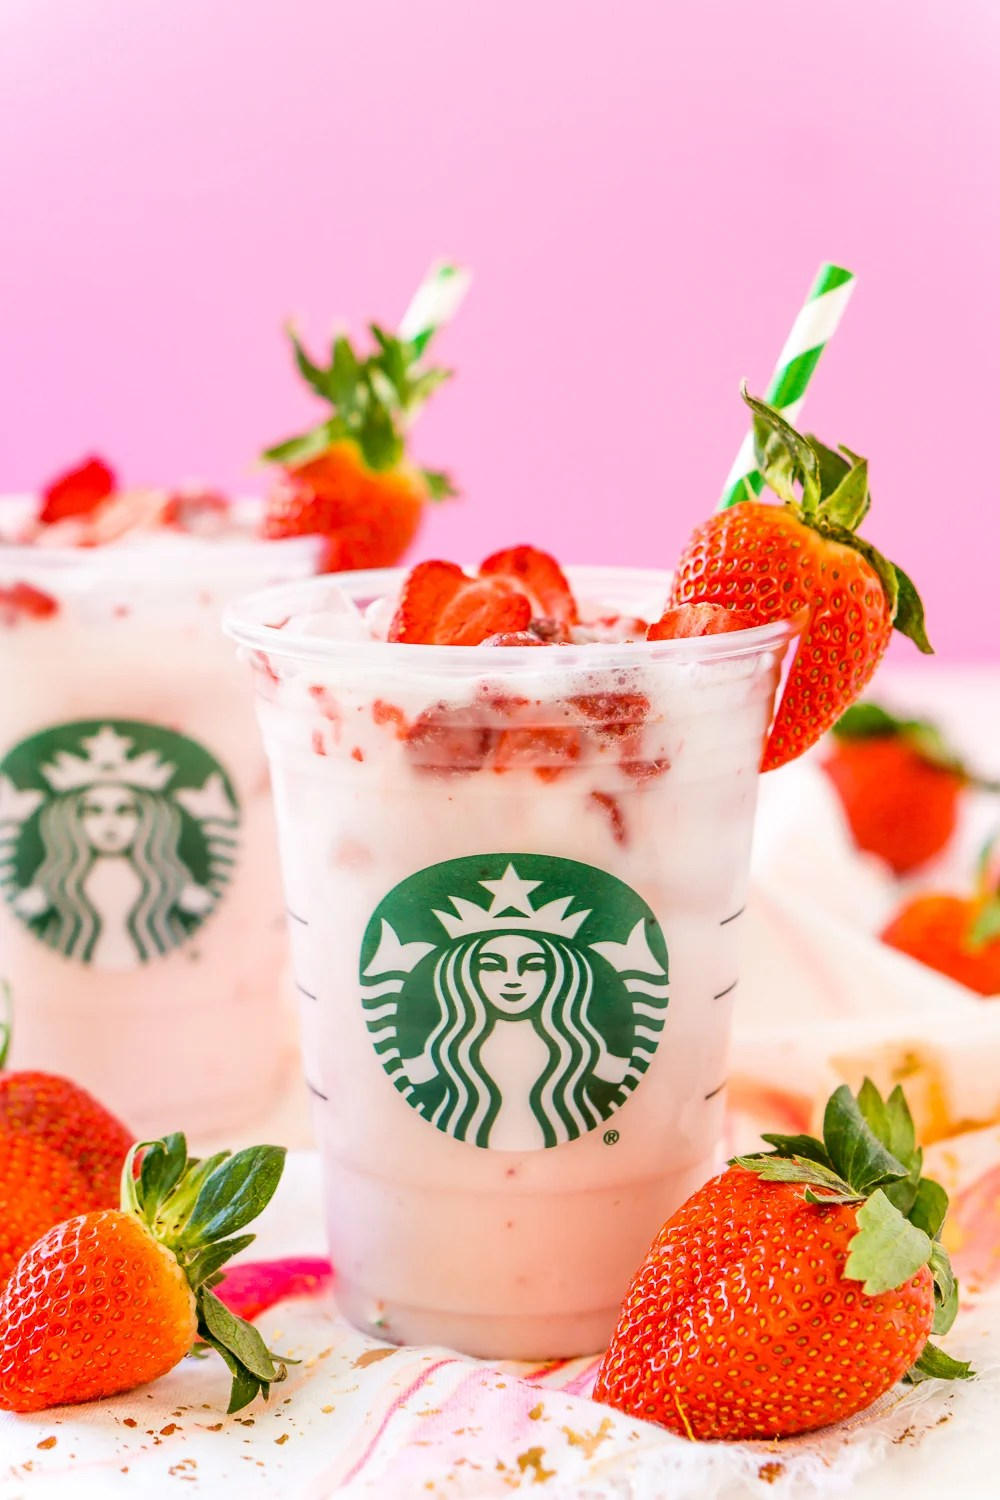 Copycat Starbucks Pink Drink in clear Starbucks cup with strawberries and pink background.